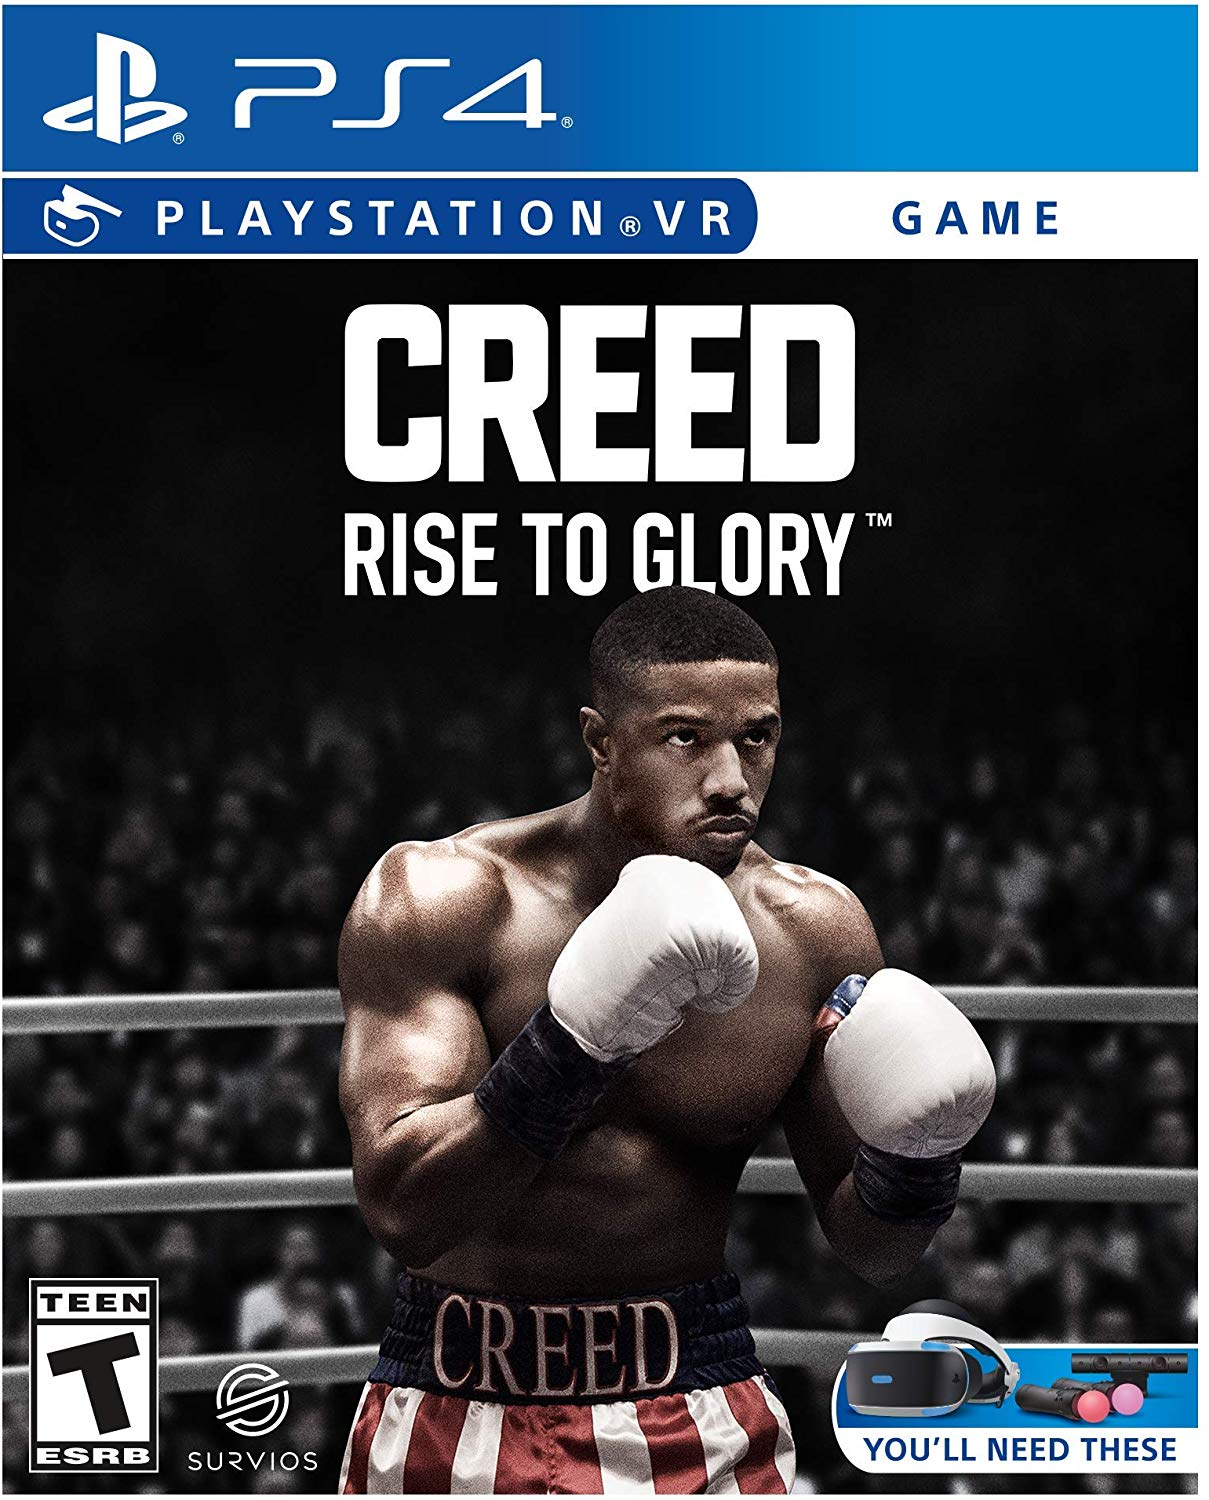 Creed Rise to Glory VR Boxing